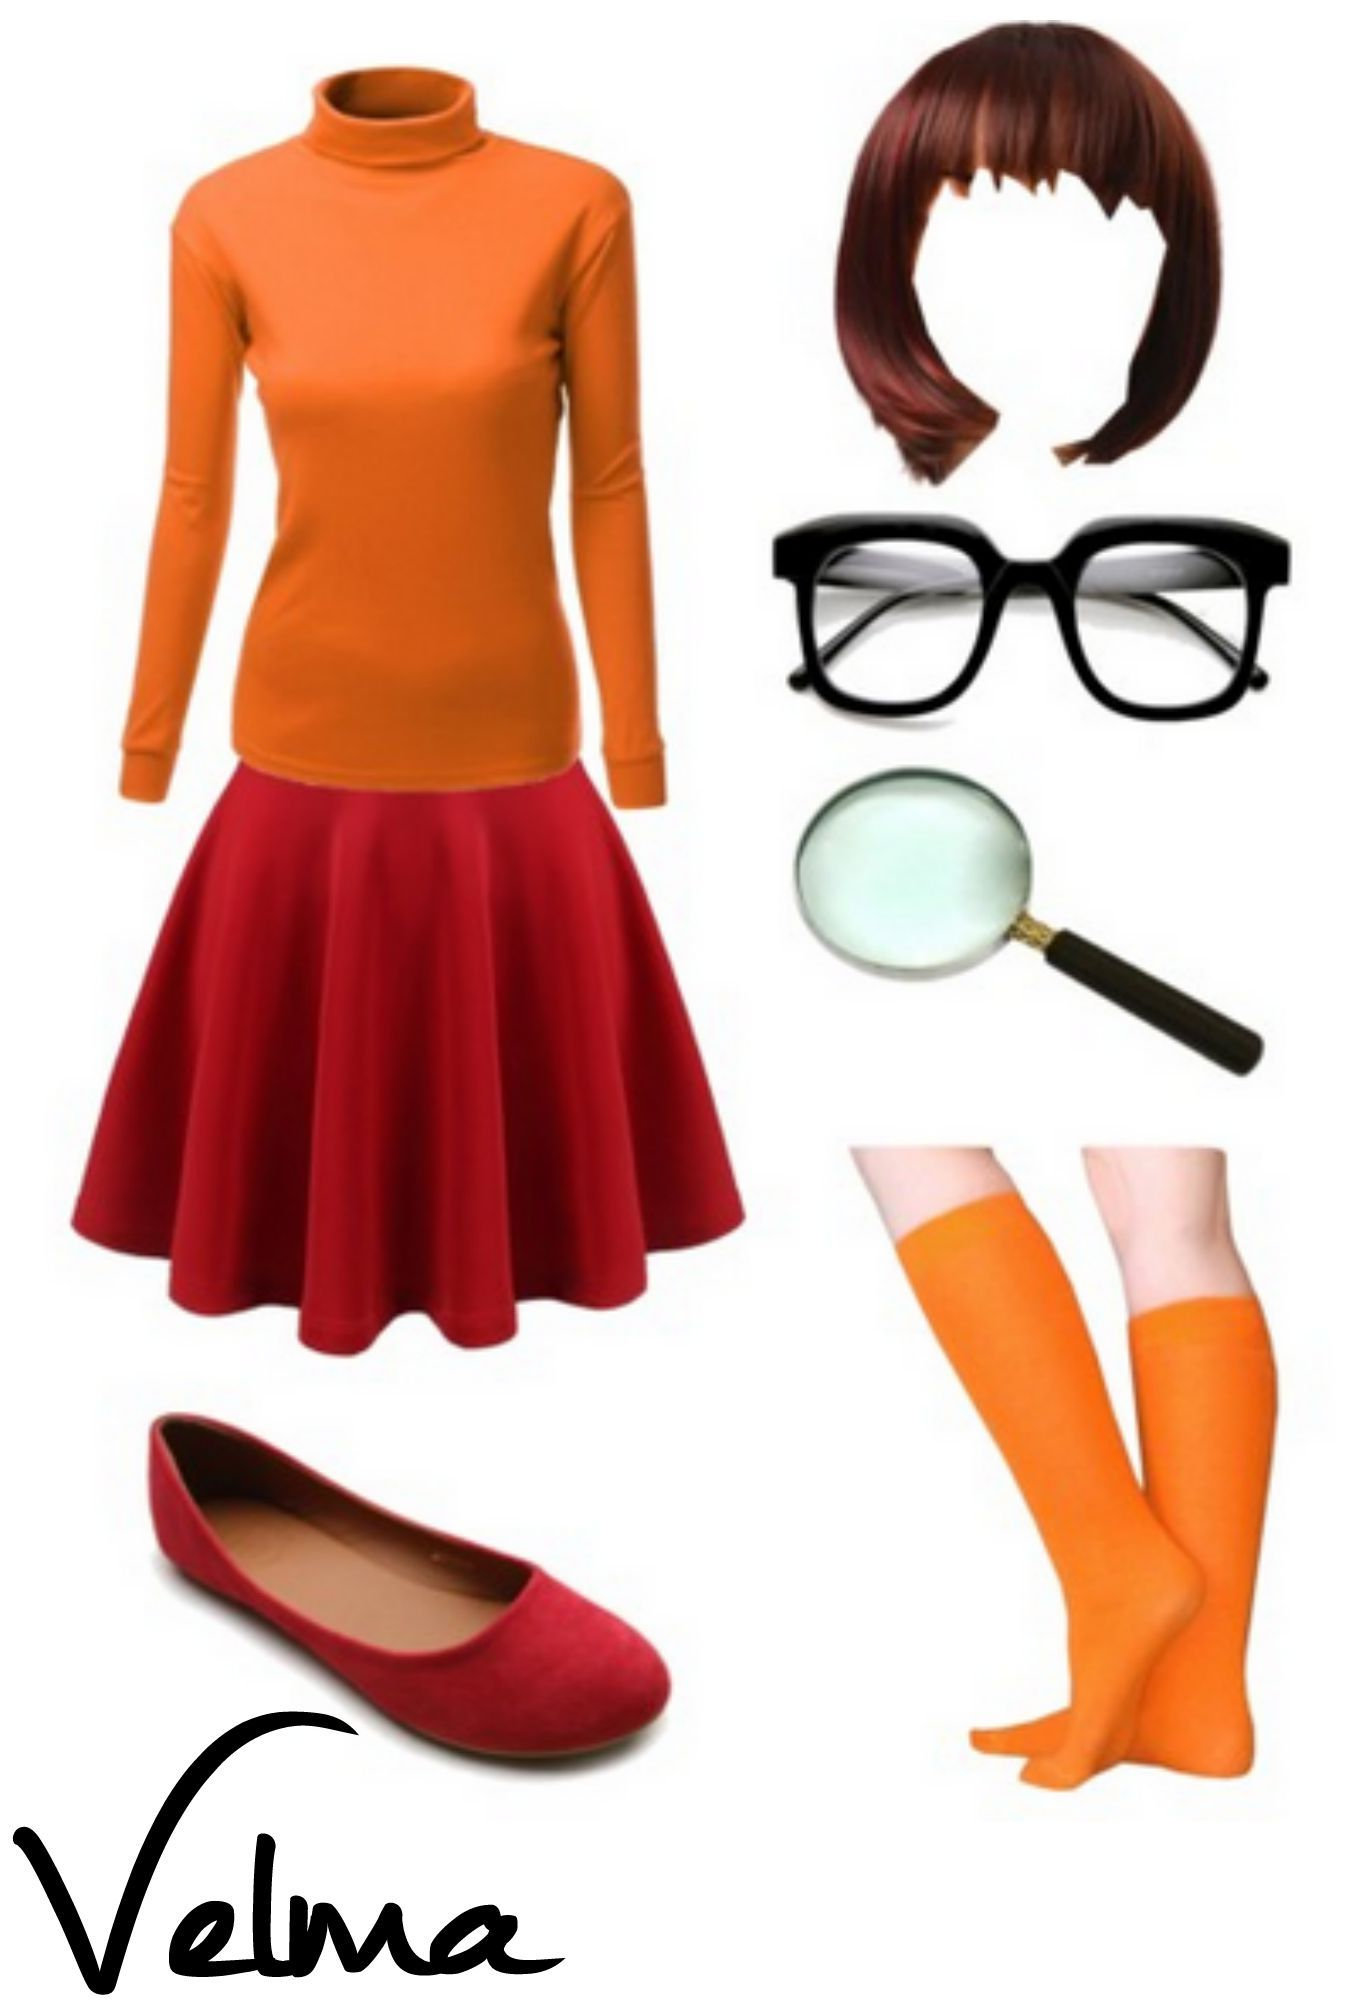 Velma Halloween Costume - I love all of the costumes she has ...